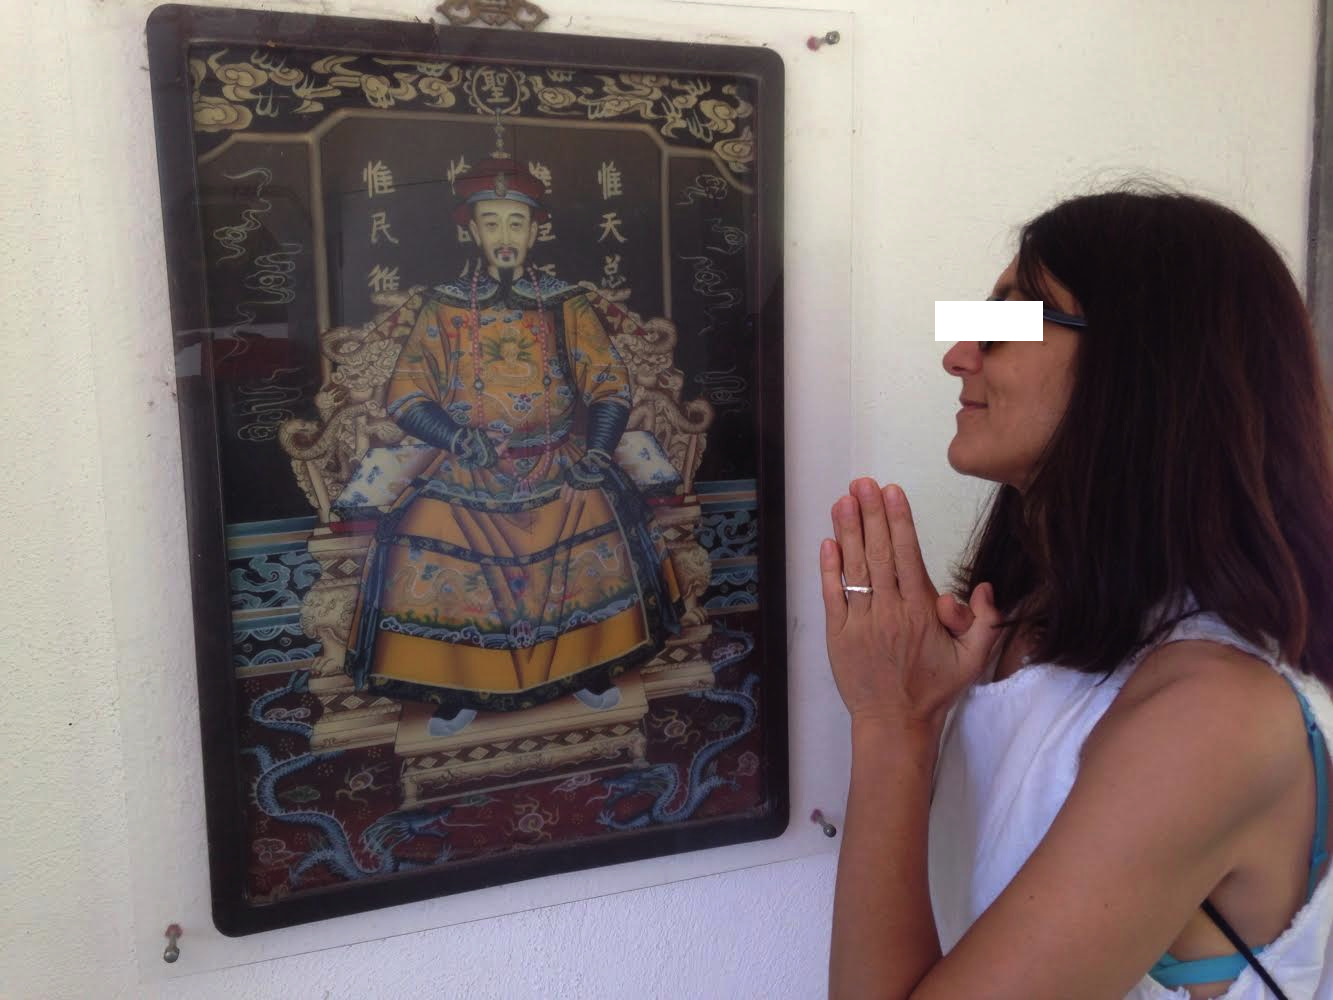 An honored guest pays homage to Emperor Ming.